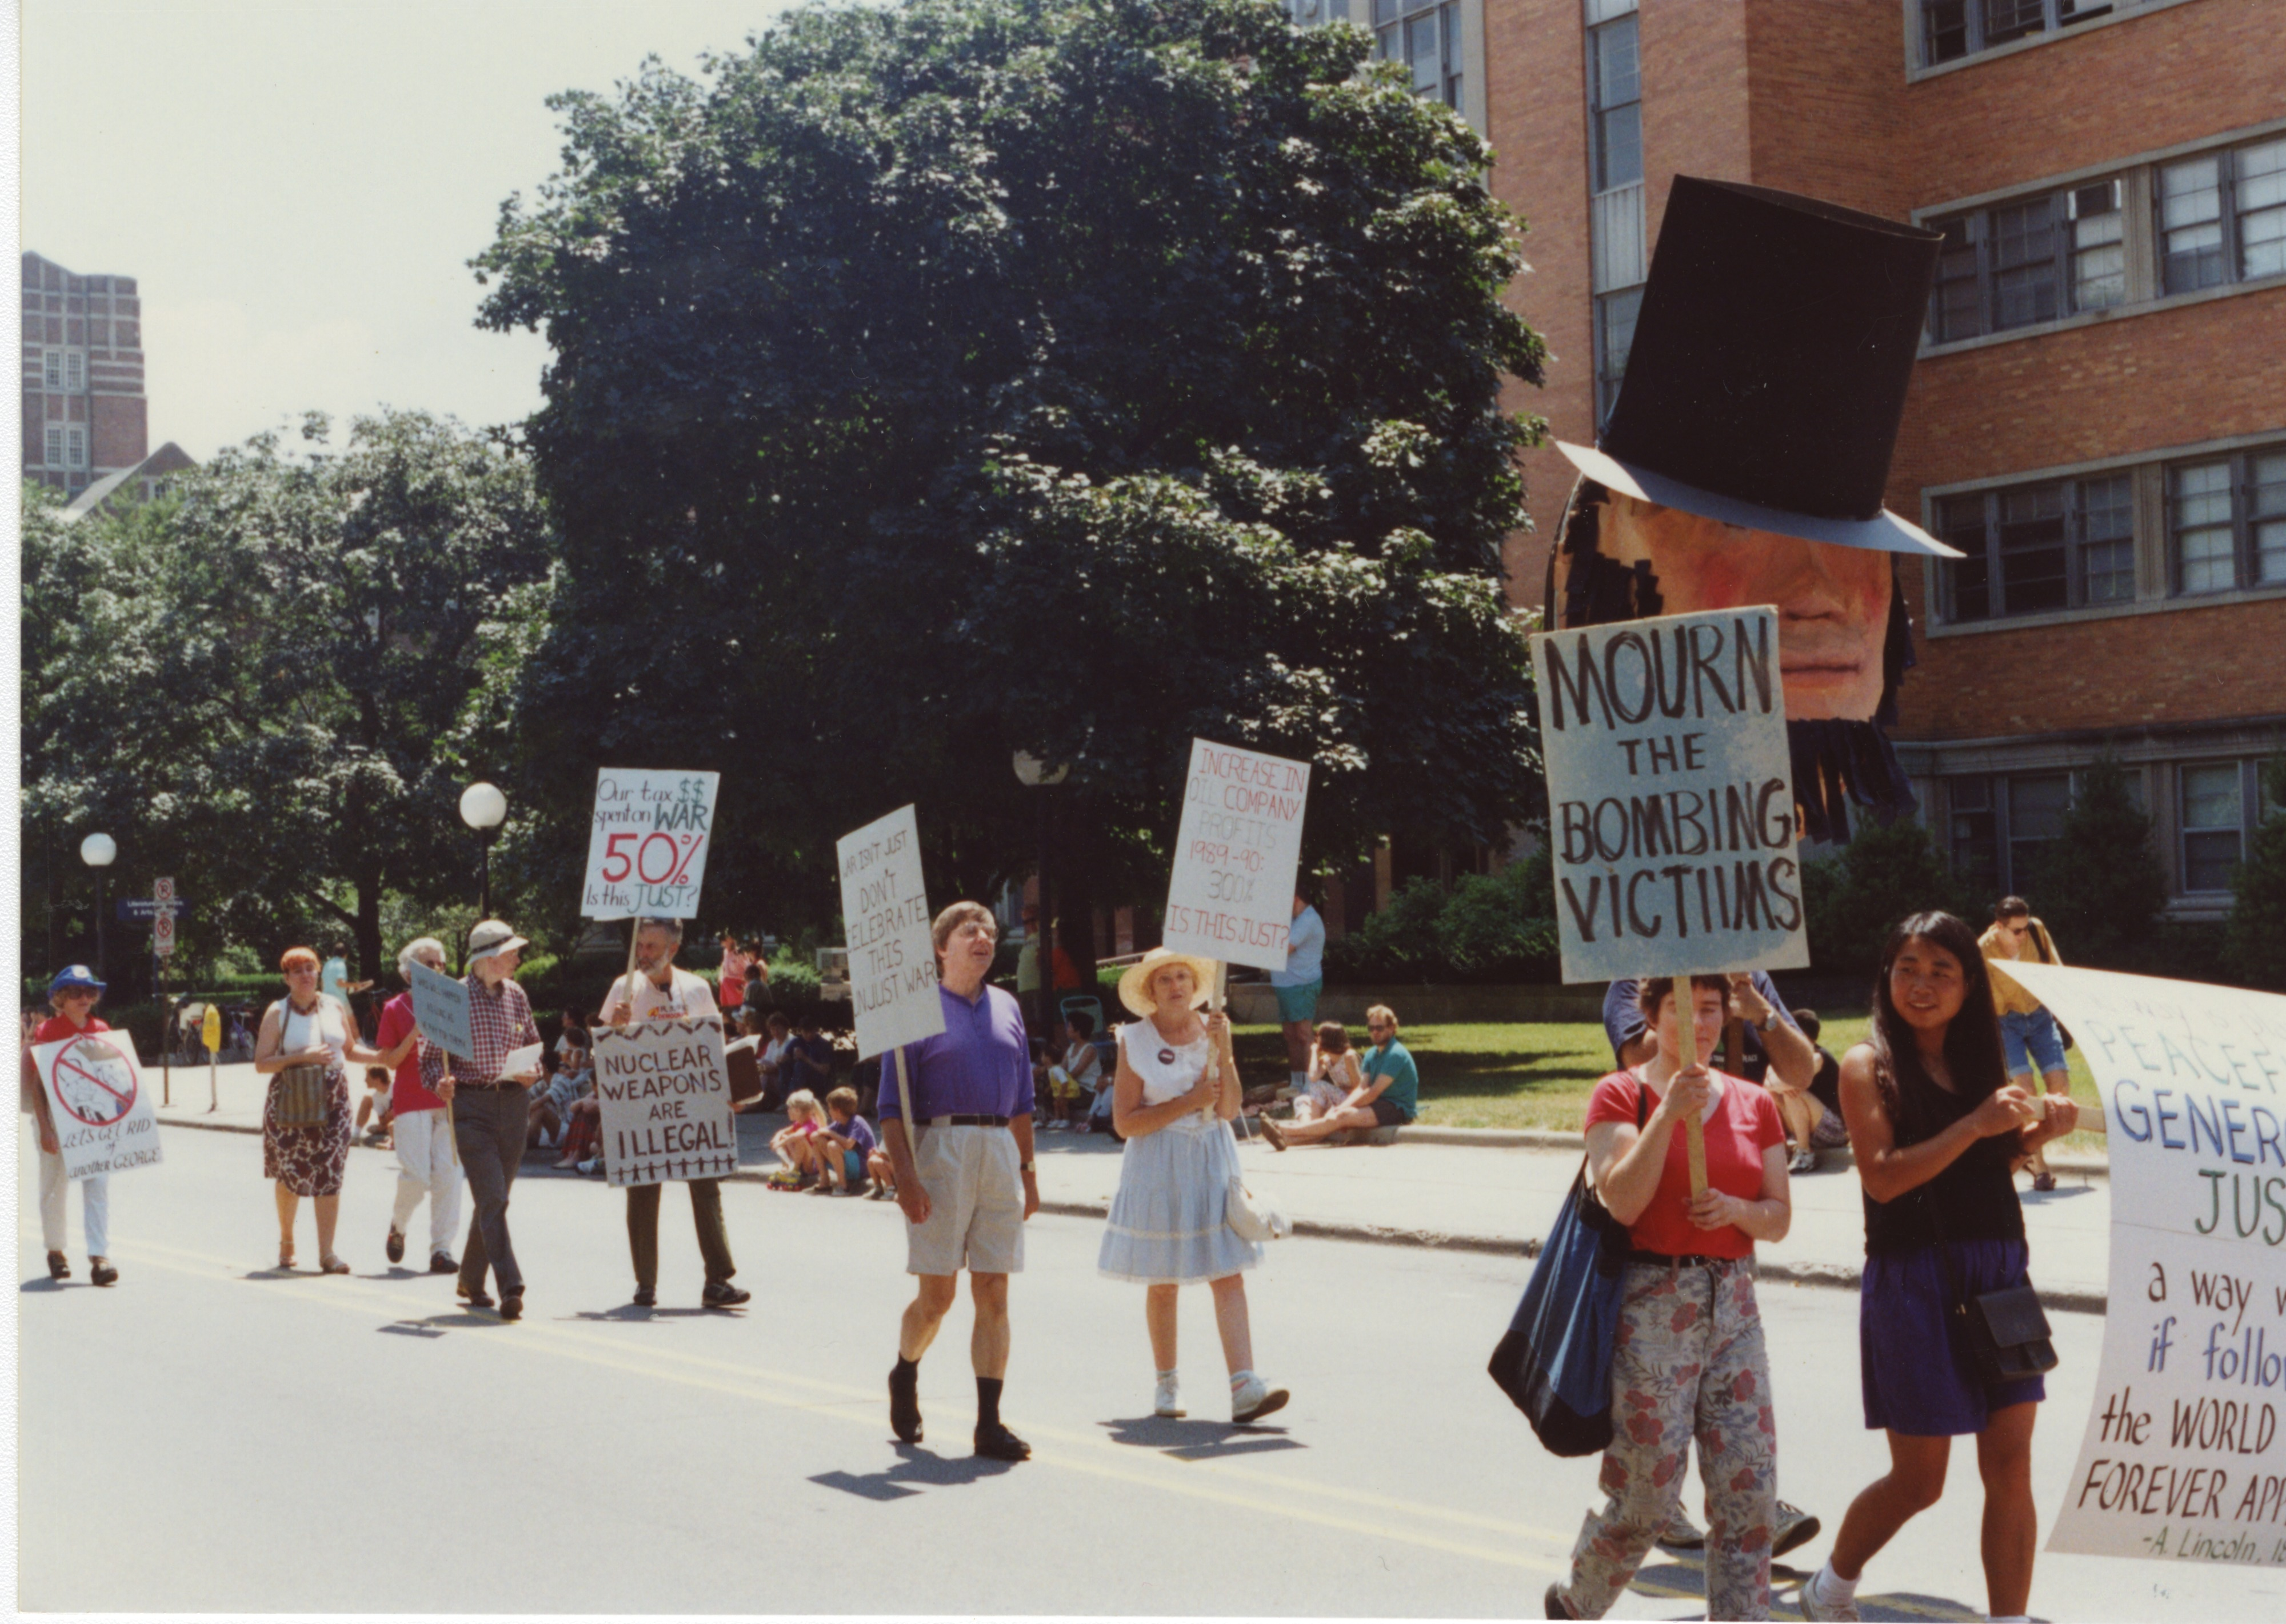 Interfaith Council for Peace and Justice: July 4th Parade, 1991 image